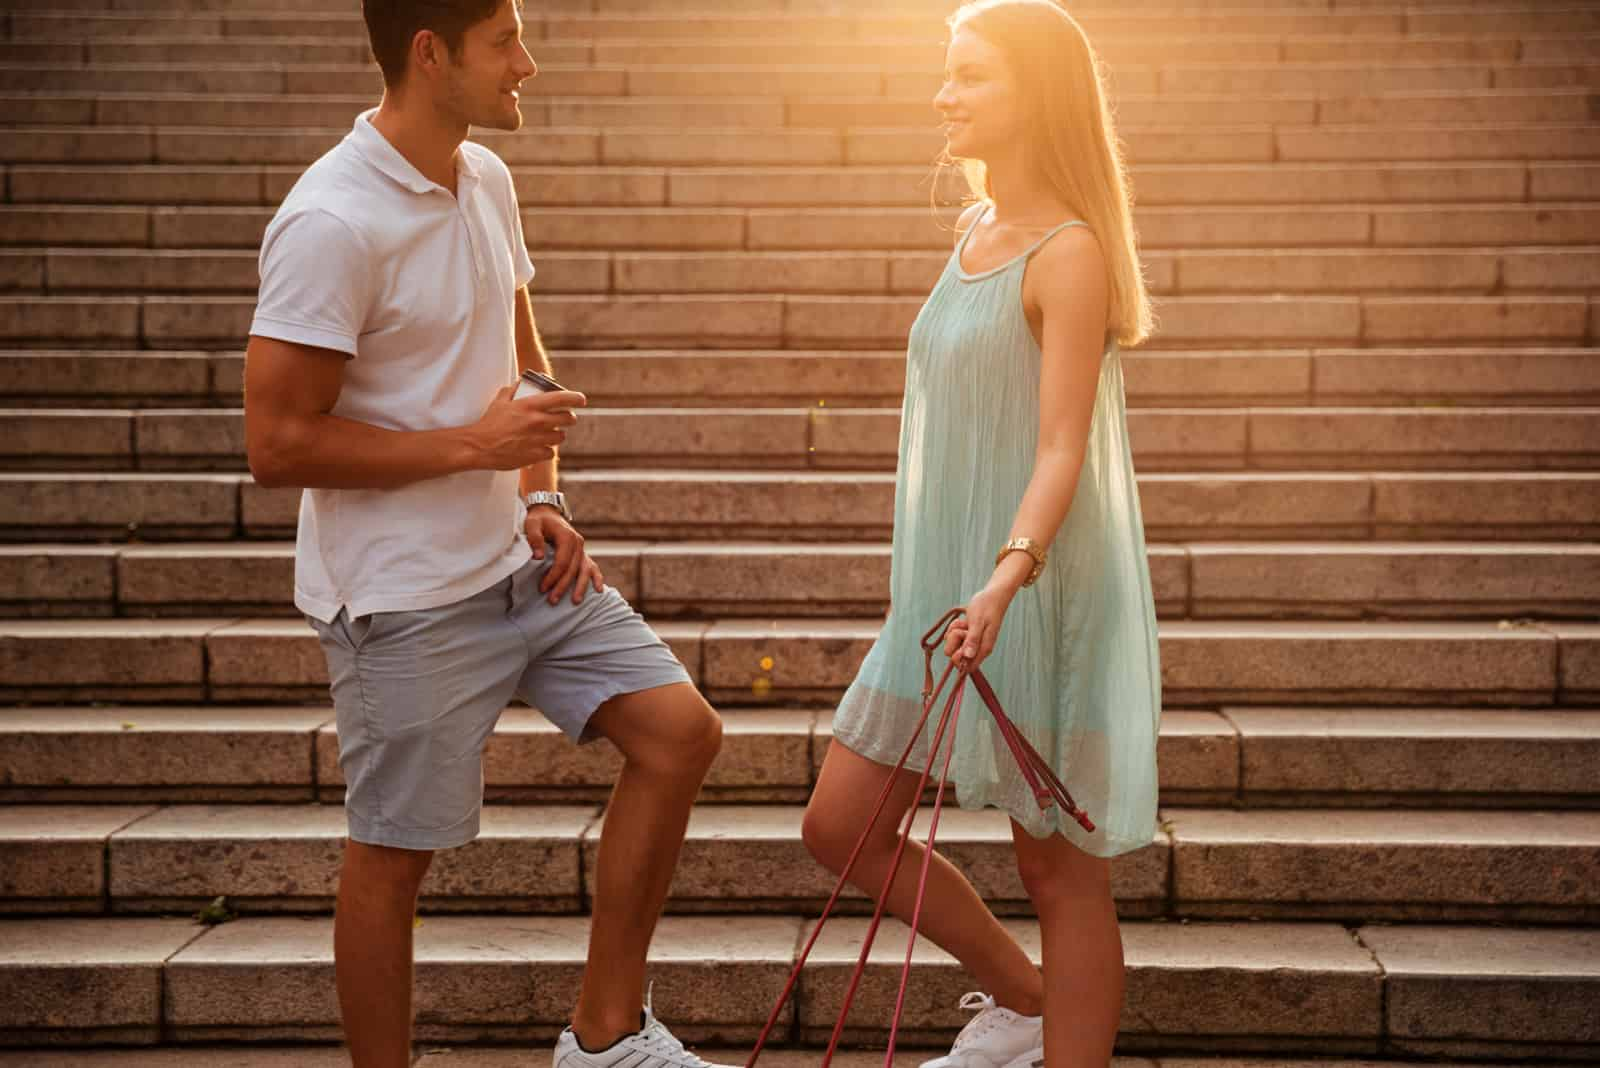 a smiling man and woman stand on the stairs and talk